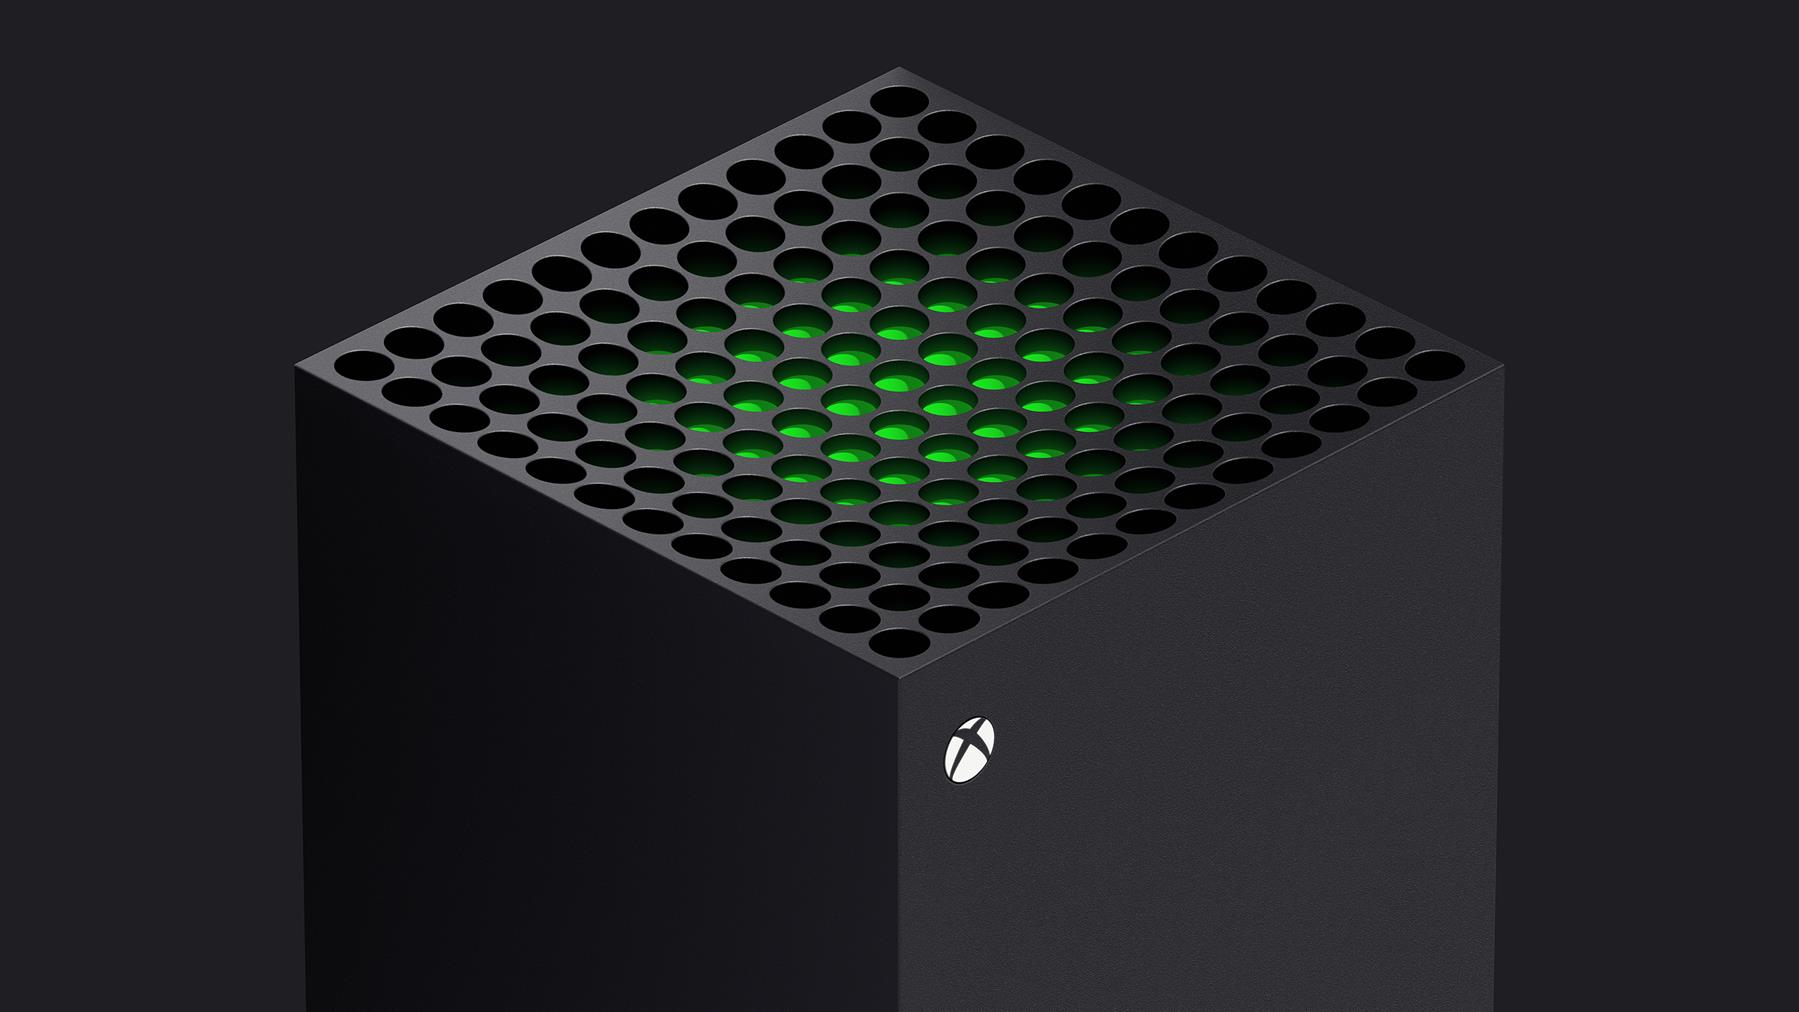 Xbox Series X/S manufacturing started later than PS5 to implement specific AMD RDNA 2 tech - VG247